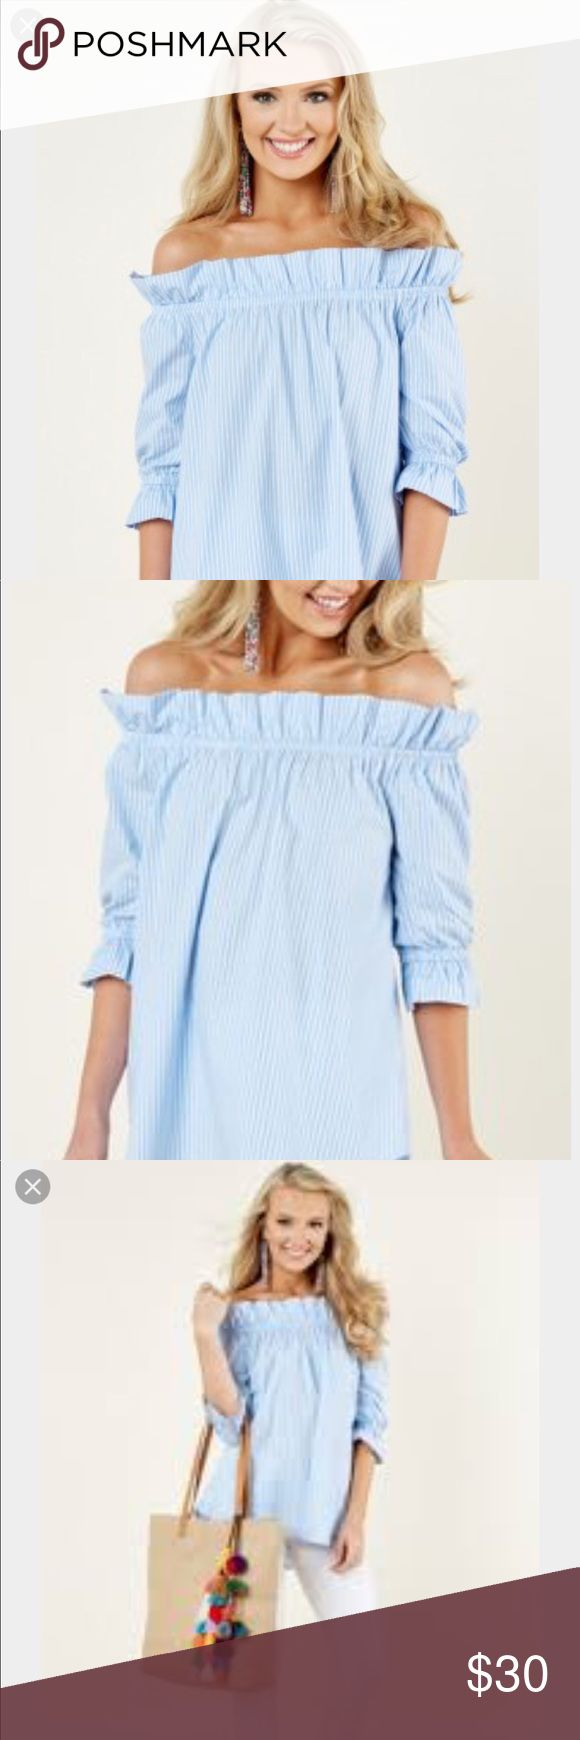 🌸NEW! 🌸Off-the shoulder blue top Adorable and New!! Red Dress Boutique off the shoulder top. Red Dress Boutique Tops